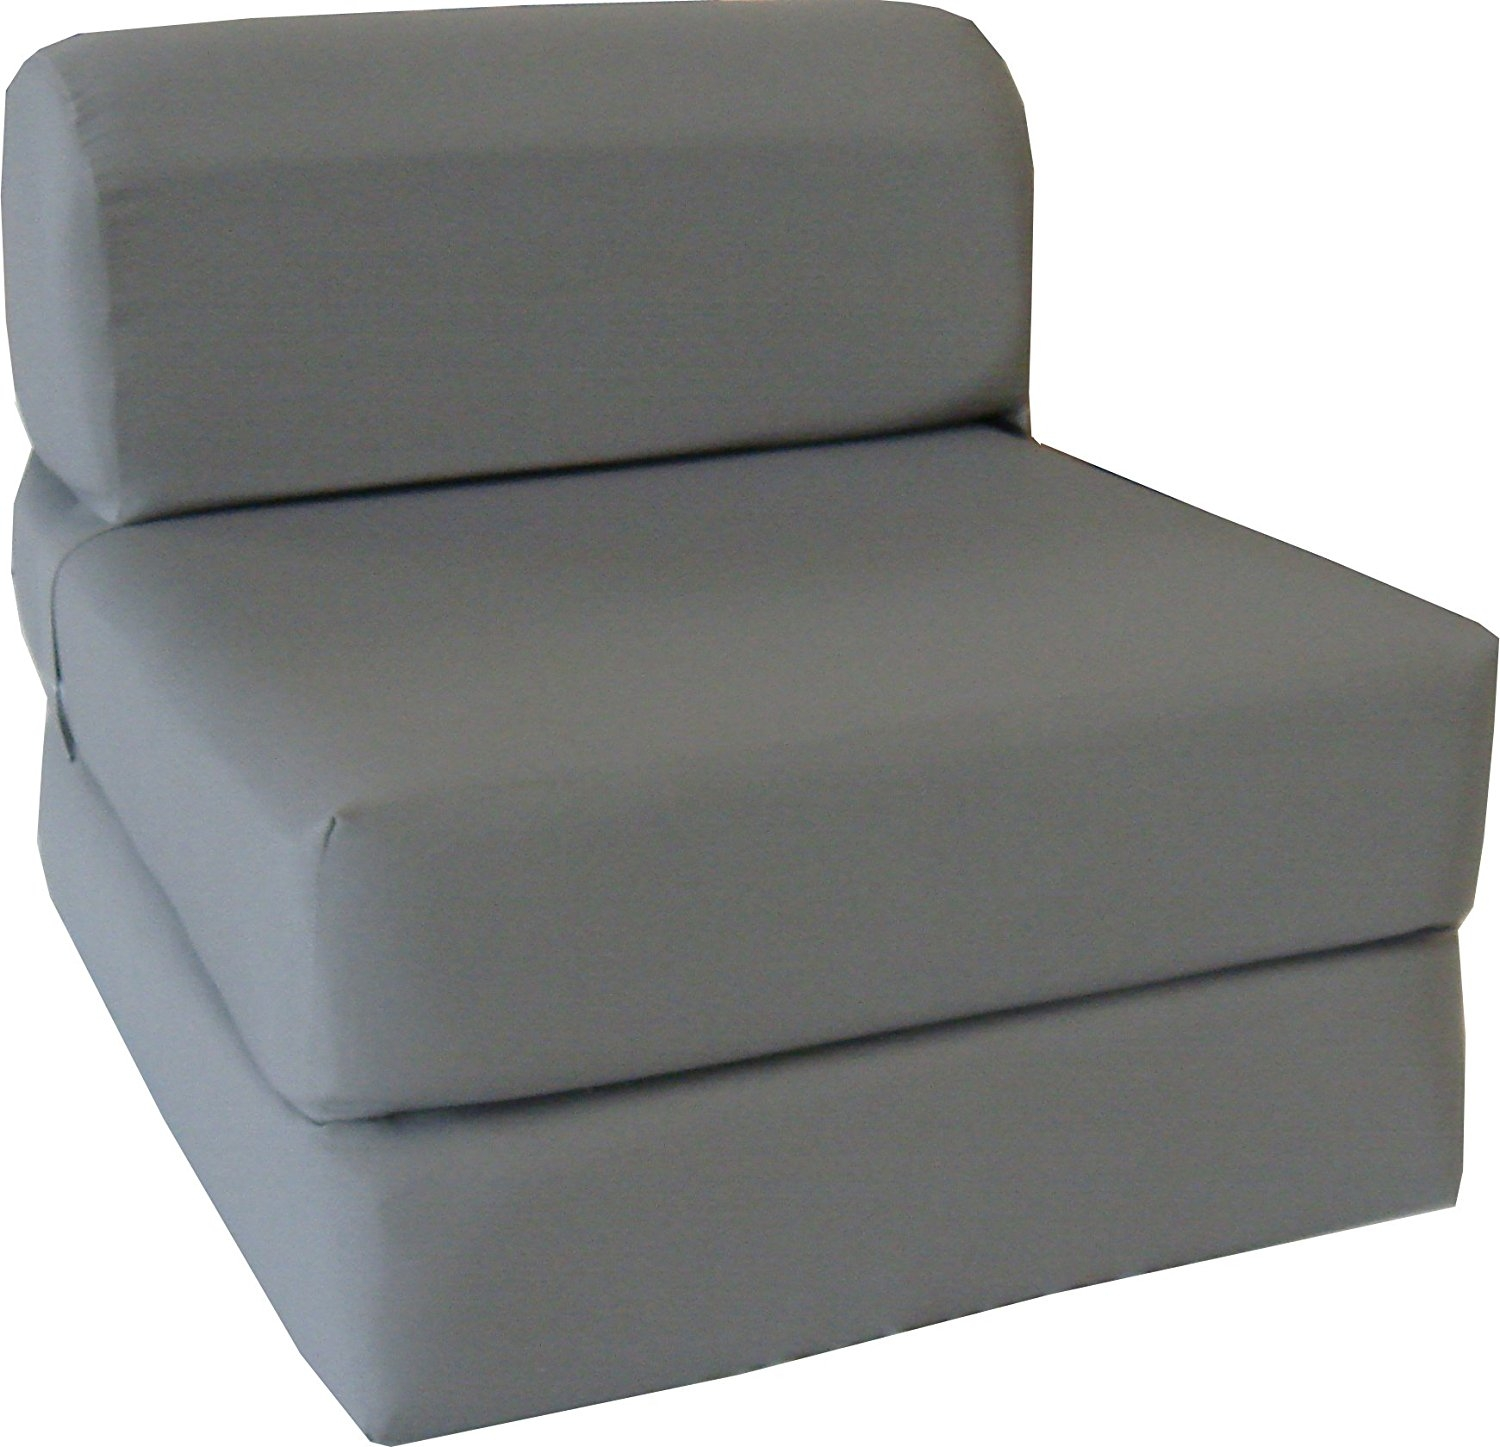 Amazon Gray Sleeper Chair Folding Foam Bed Sized 6 Thick X Inside Folding Sofa Chairs (Image 2 of 15)